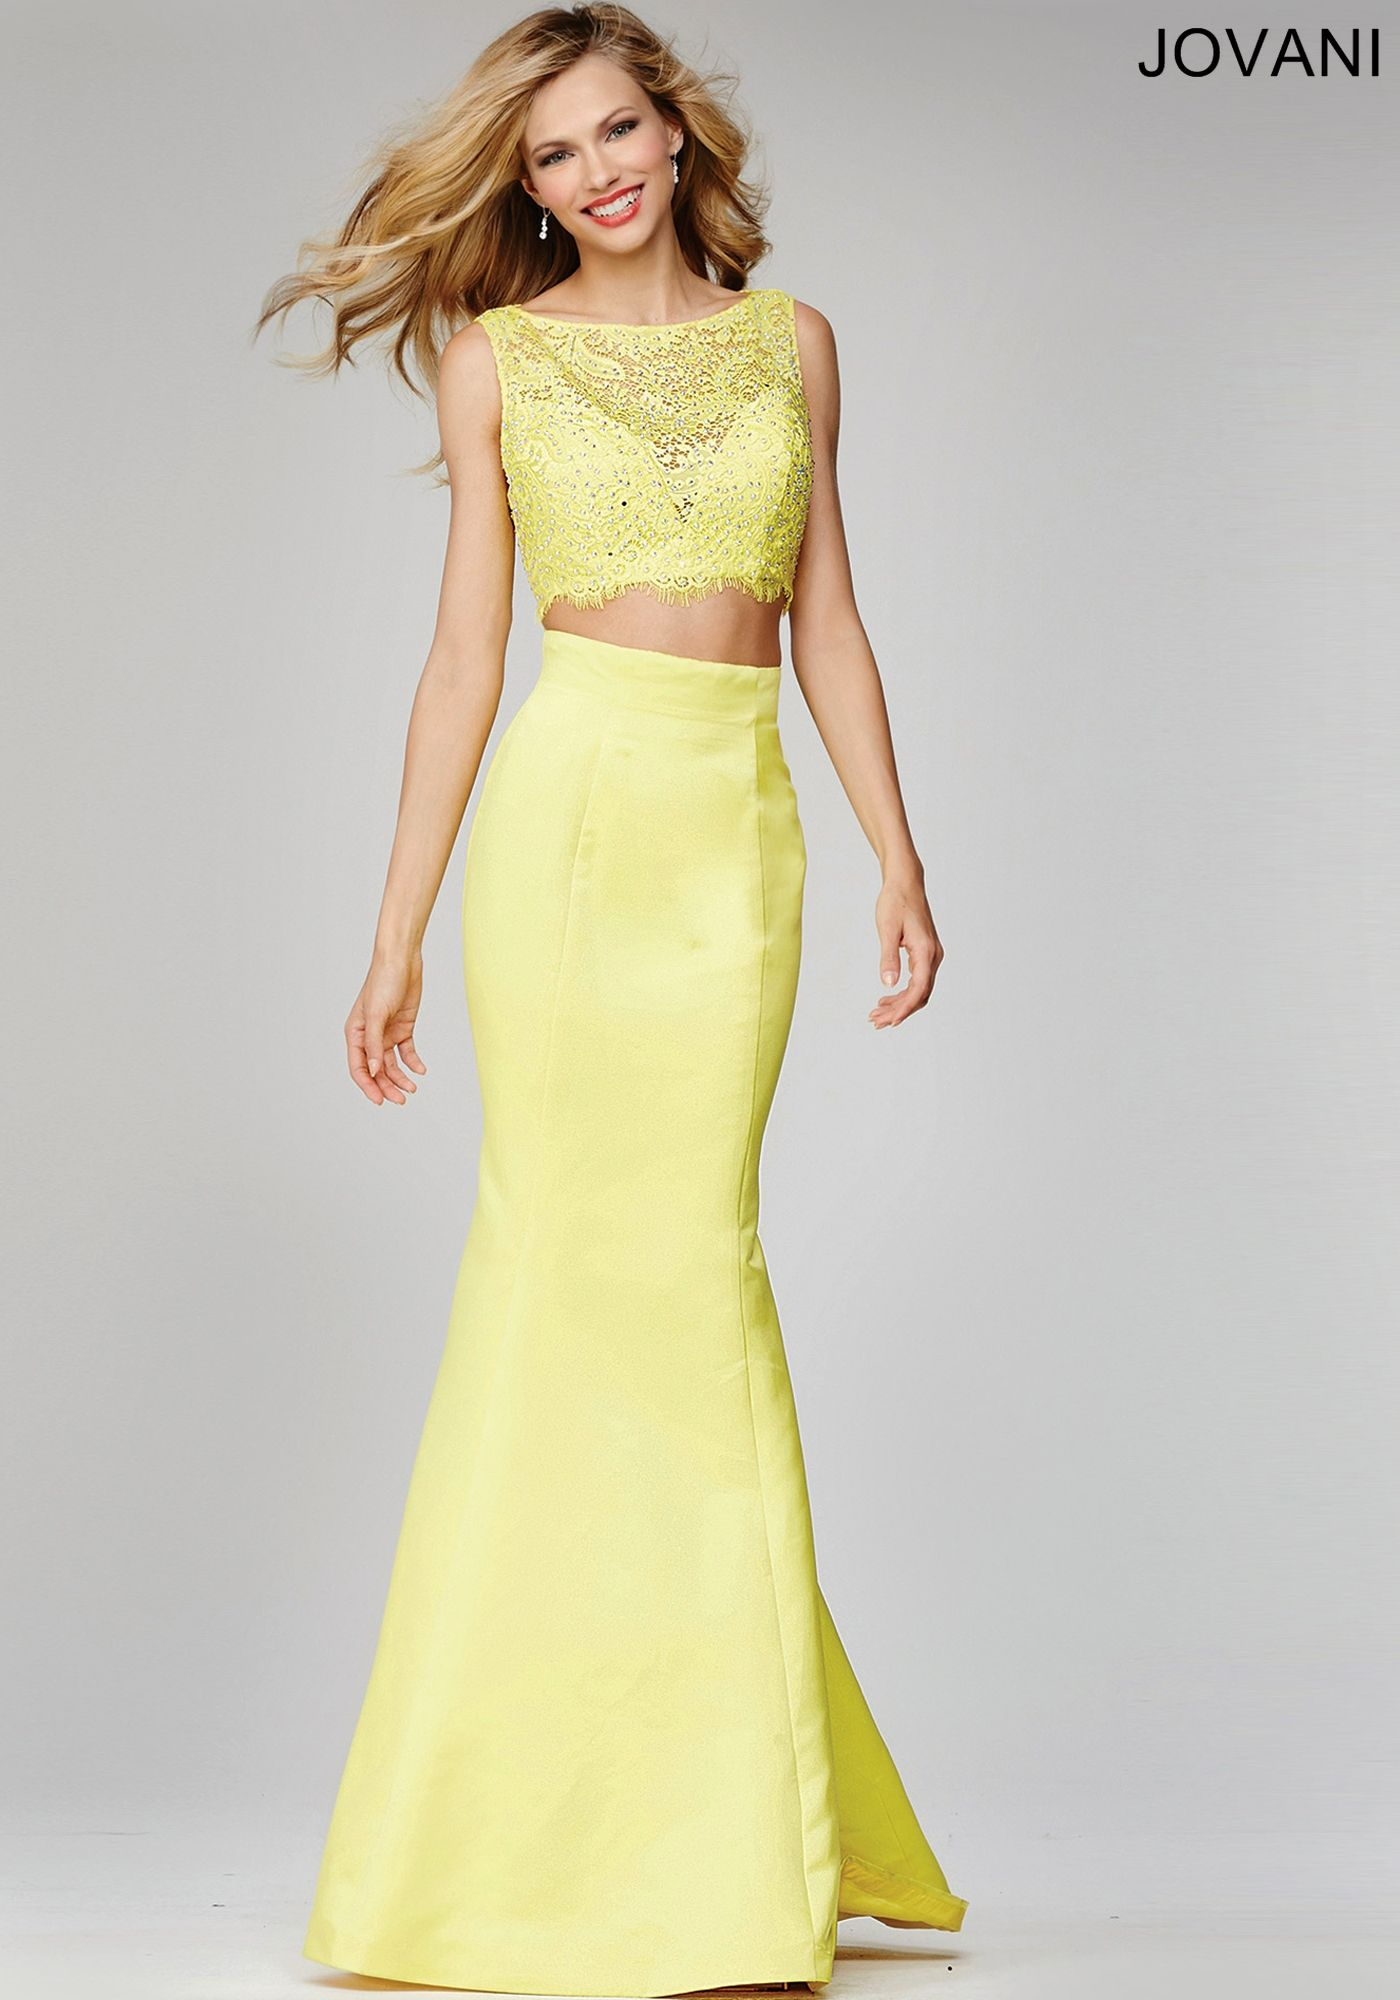 Yellow Two-Piece Prom Dress 24073 - Prom Dresses | Prom Dresses ...